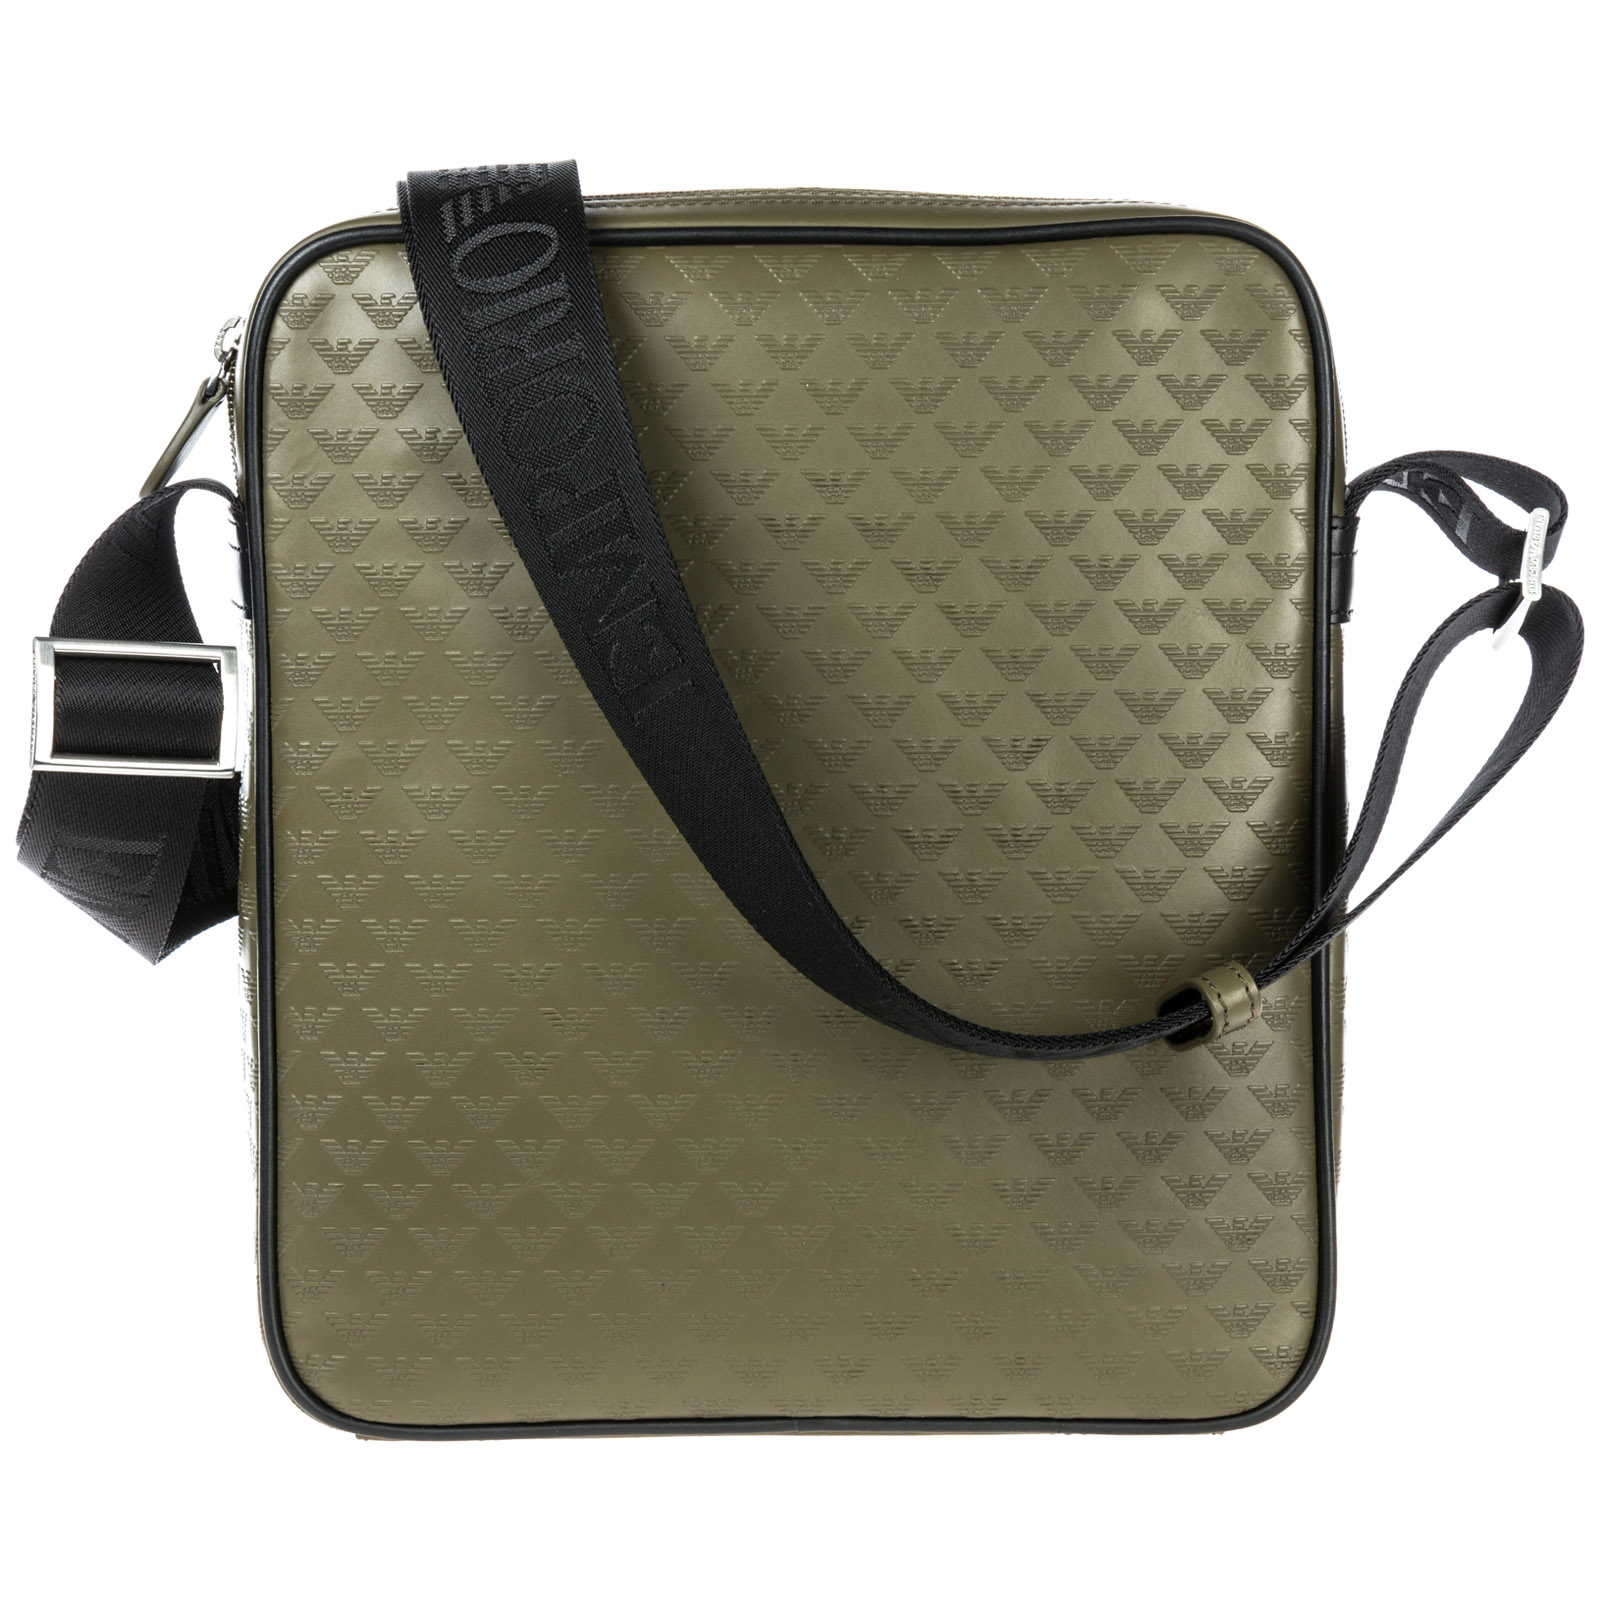 Looks - Military tods bag collection video